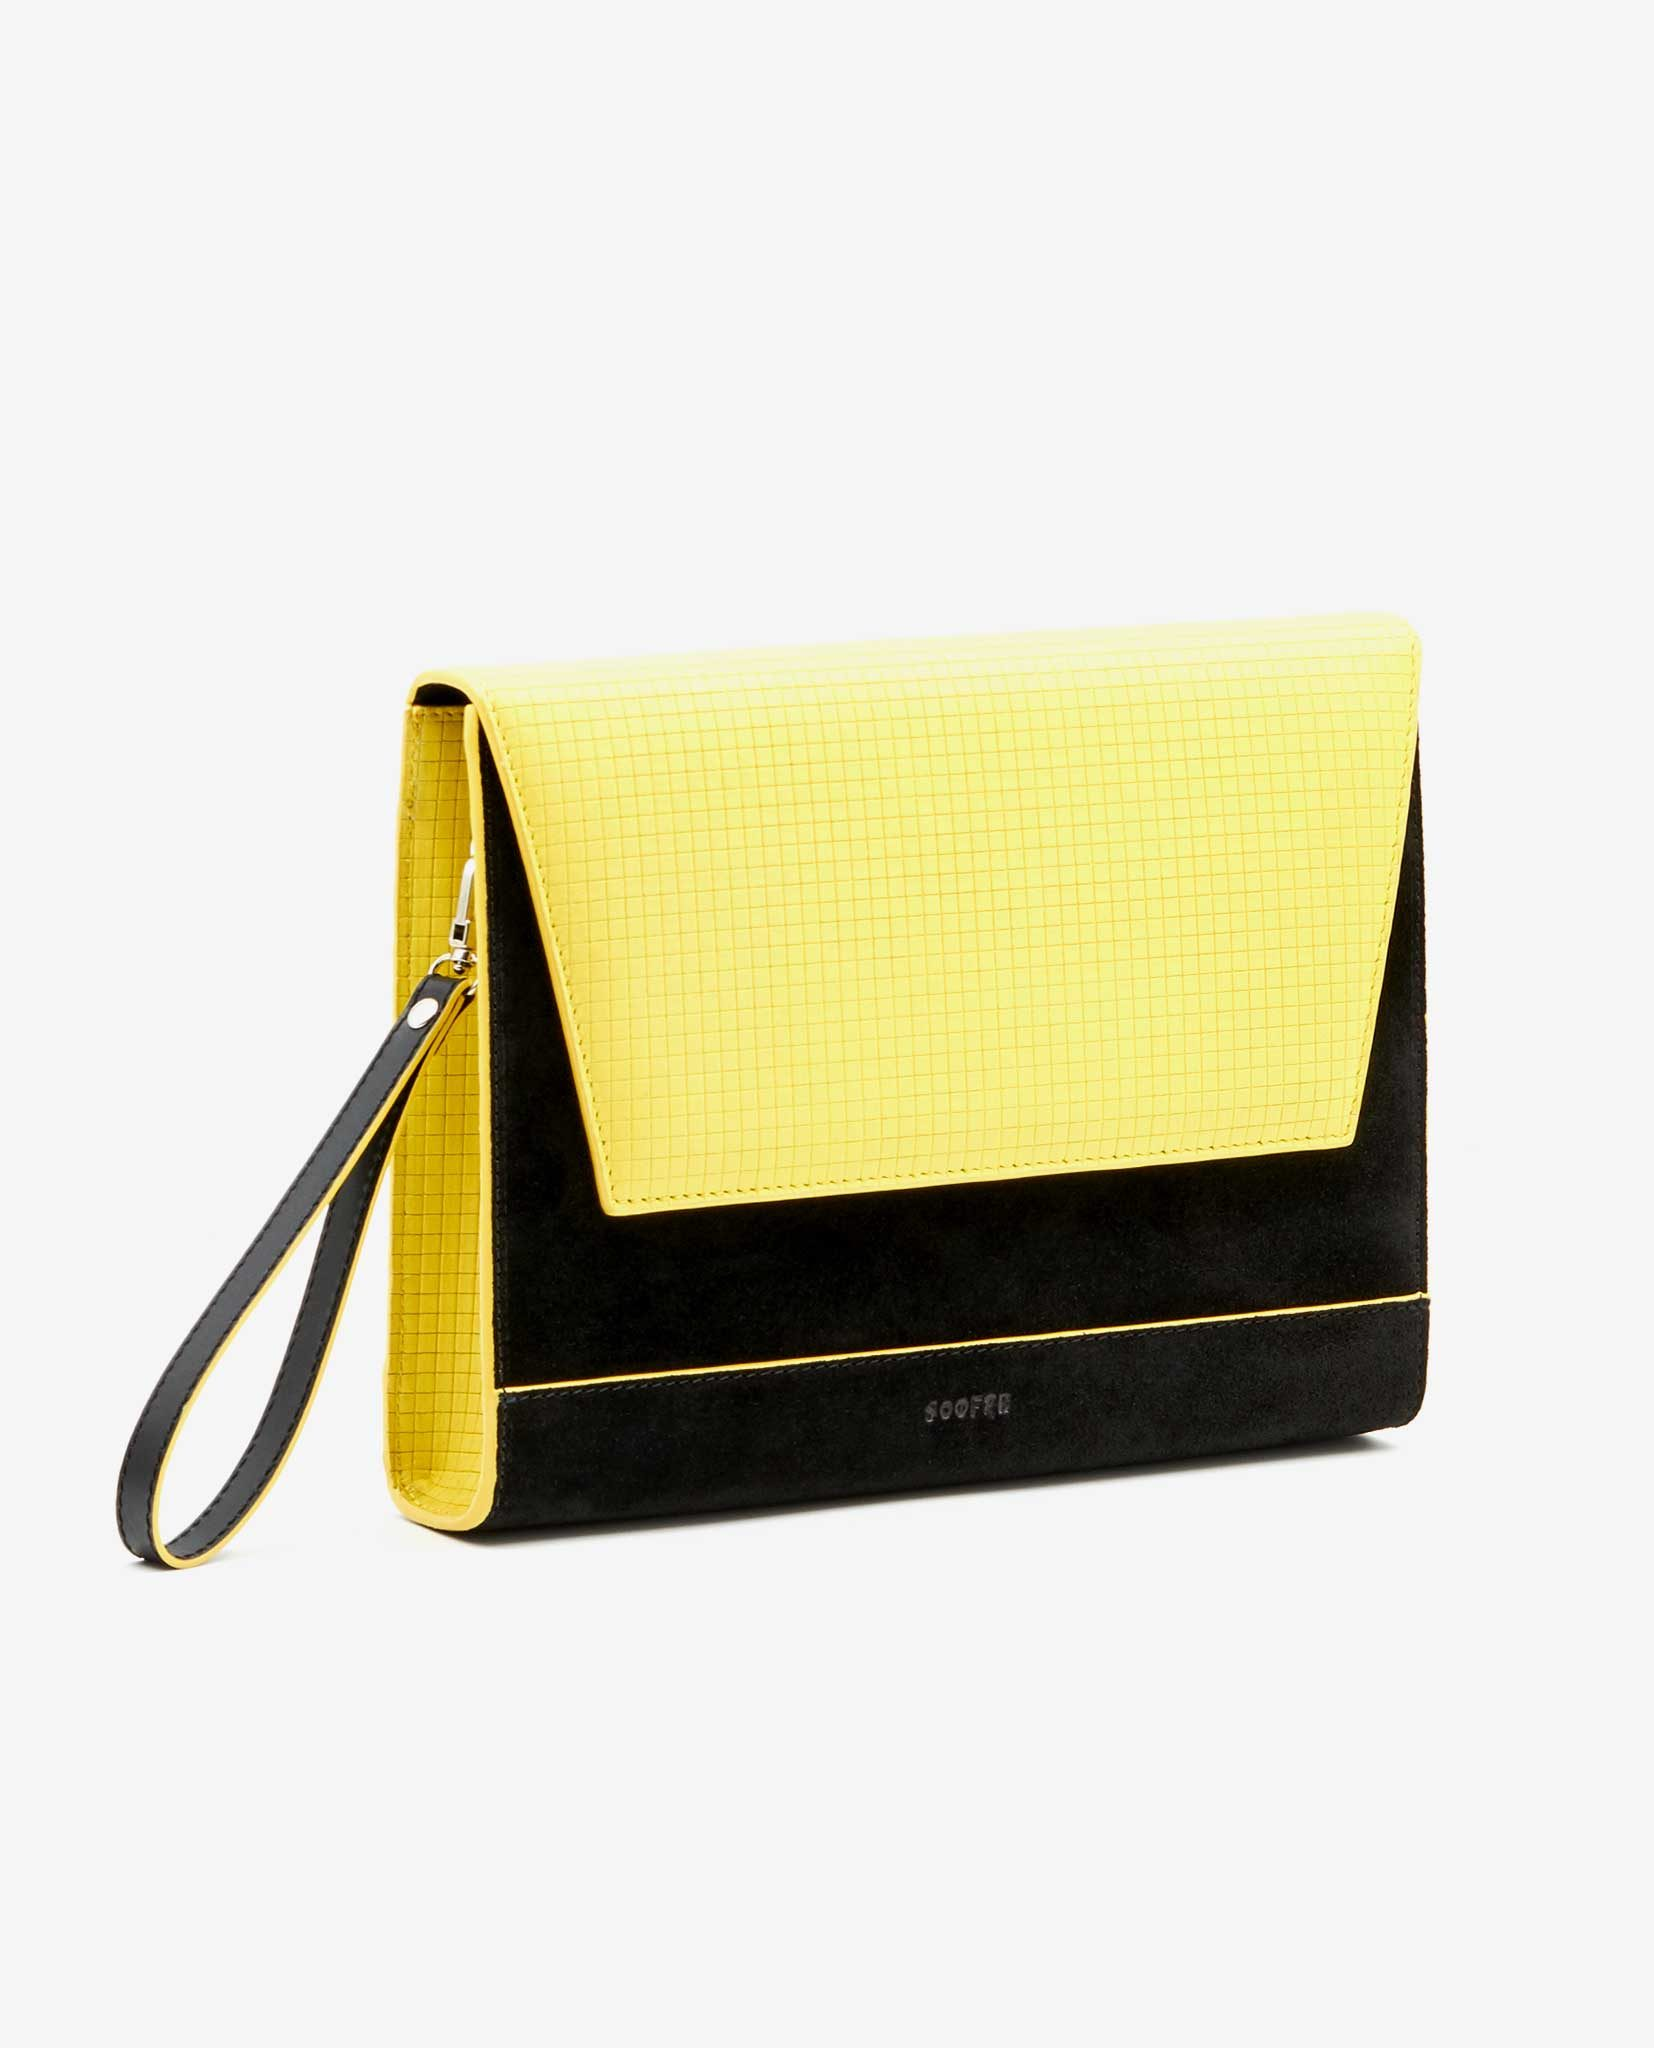 SOOFRE-Berlin-unique-Clutch-squared-yellow-black-SIDES